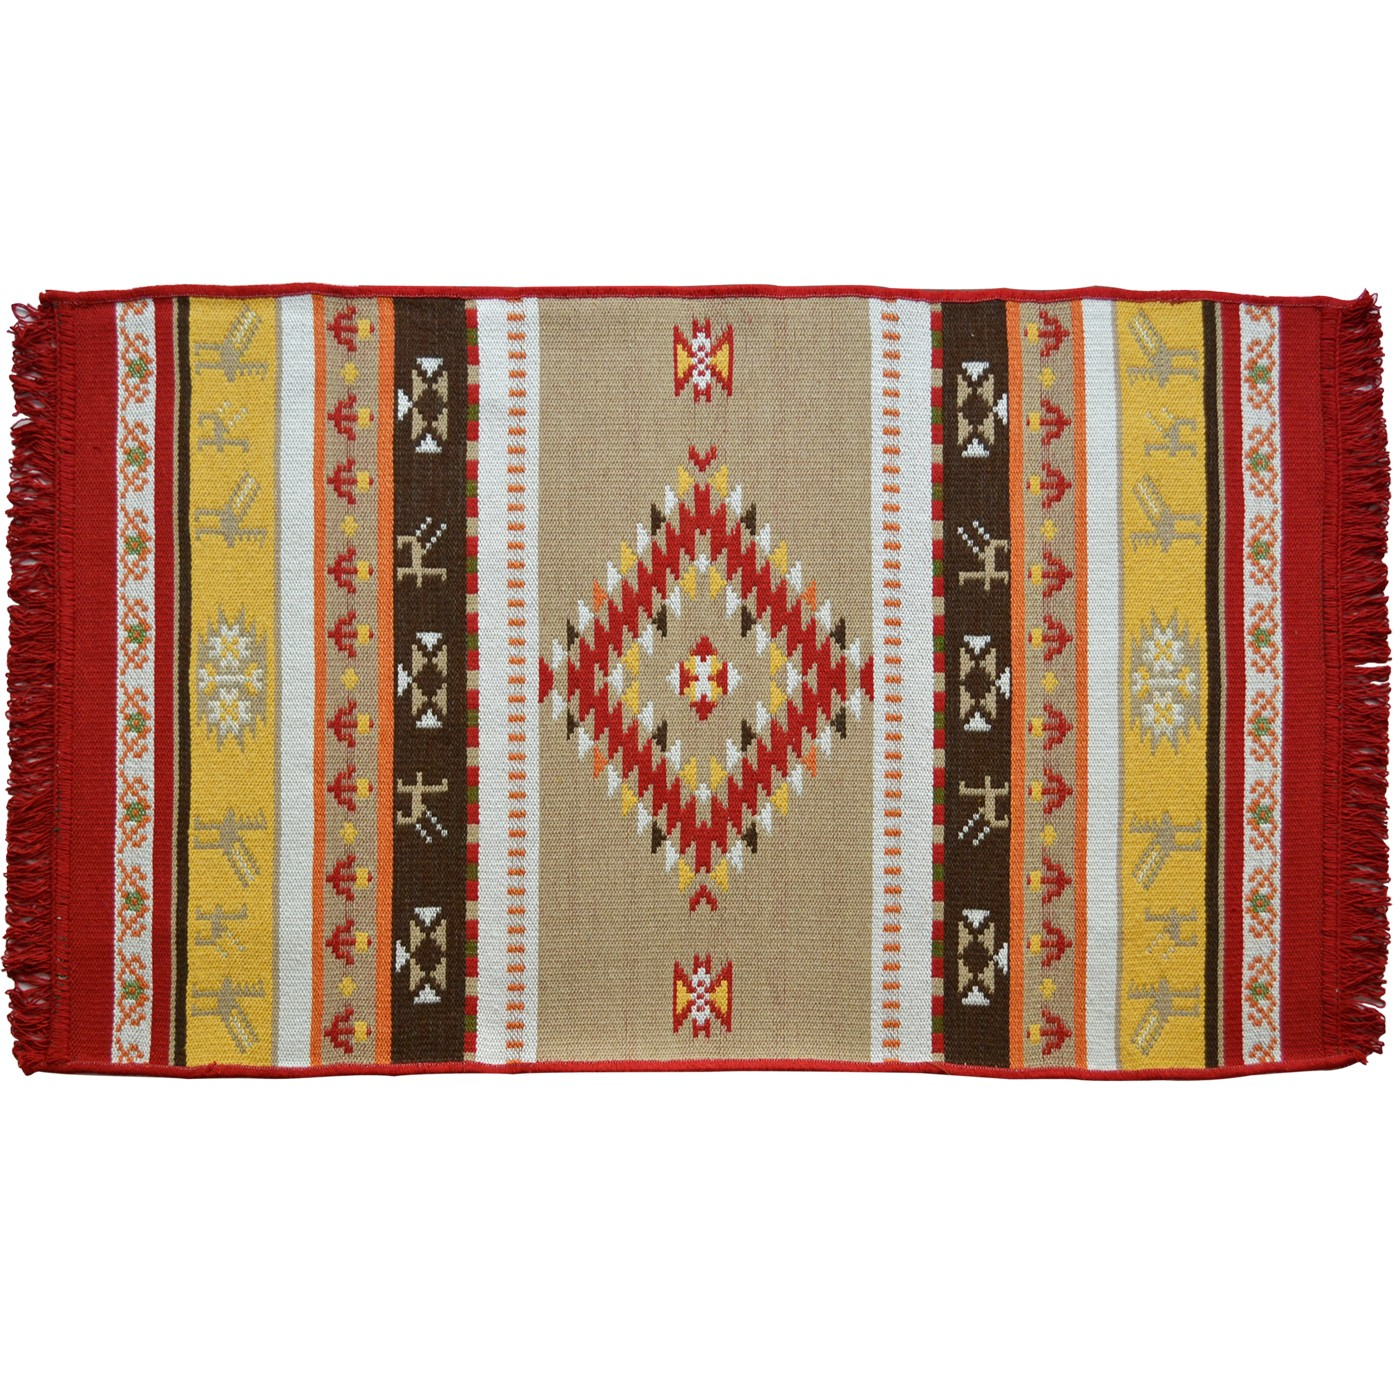 Omfalos_Ethnic_Summer_Carpet_Bright_Red